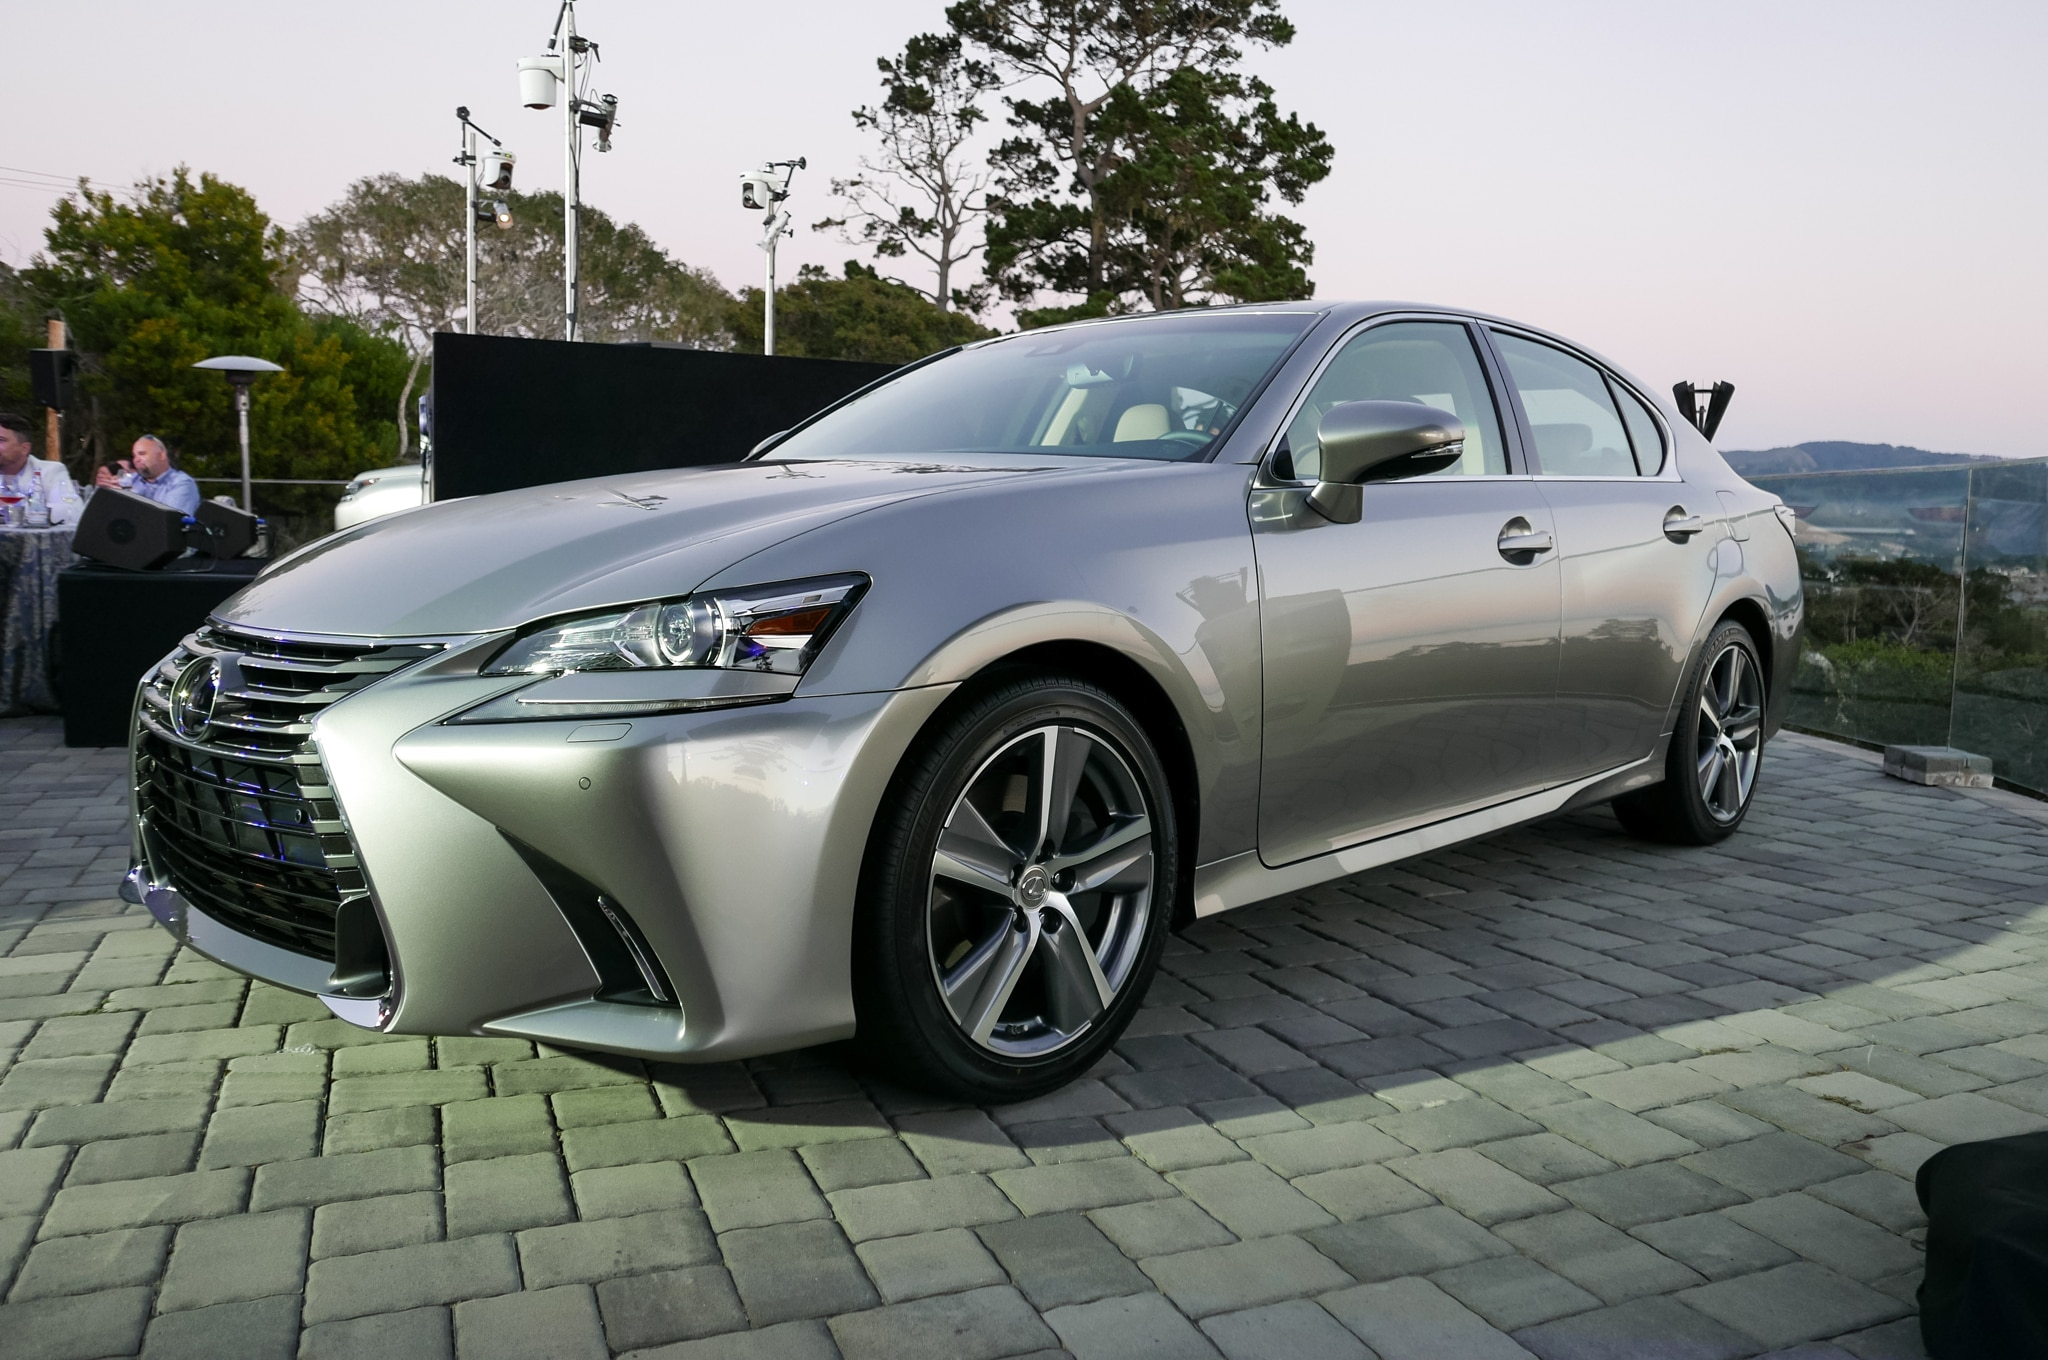 2016 lexus gs refreshed adds turbocharged gs 200t model. Black Bedroom Furniture Sets. Home Design Ideas